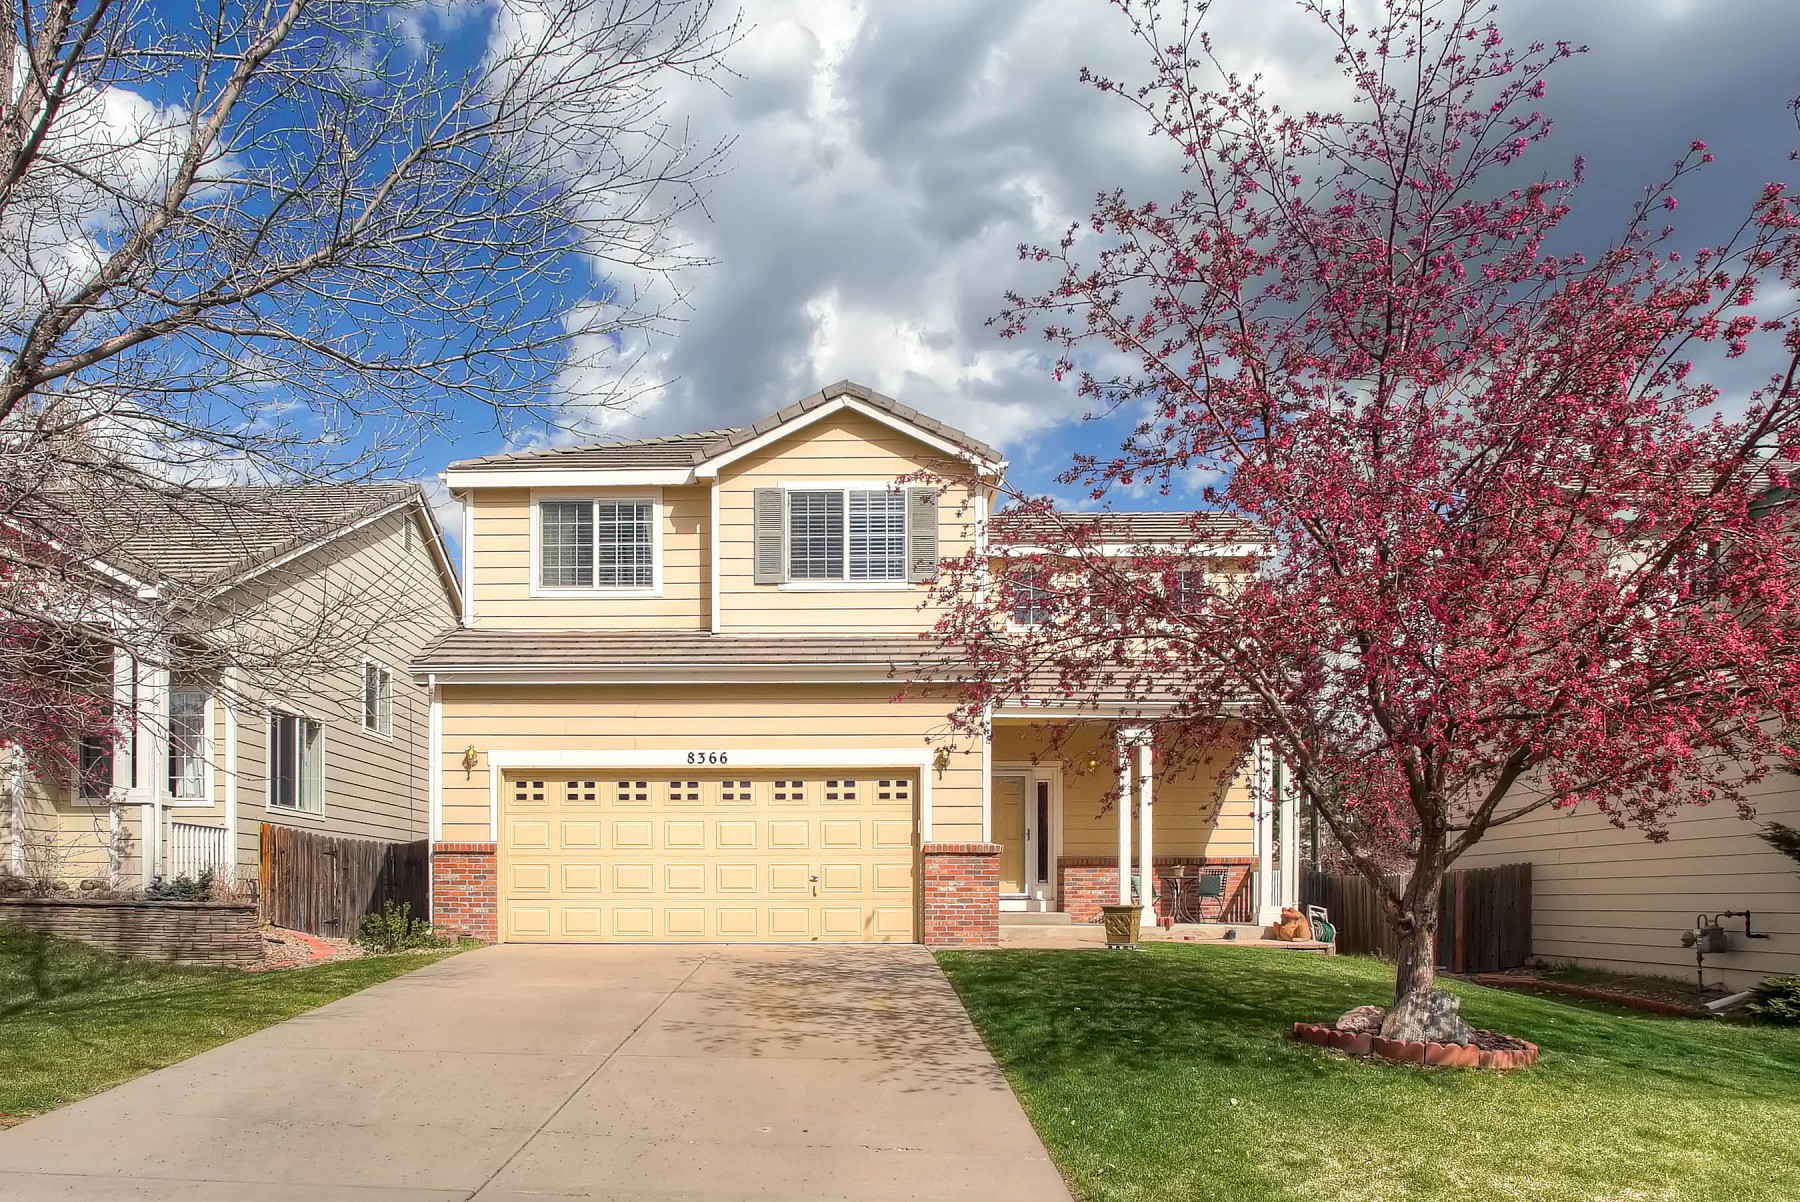 8366 South Pierce Way, Littleton, CO 80128